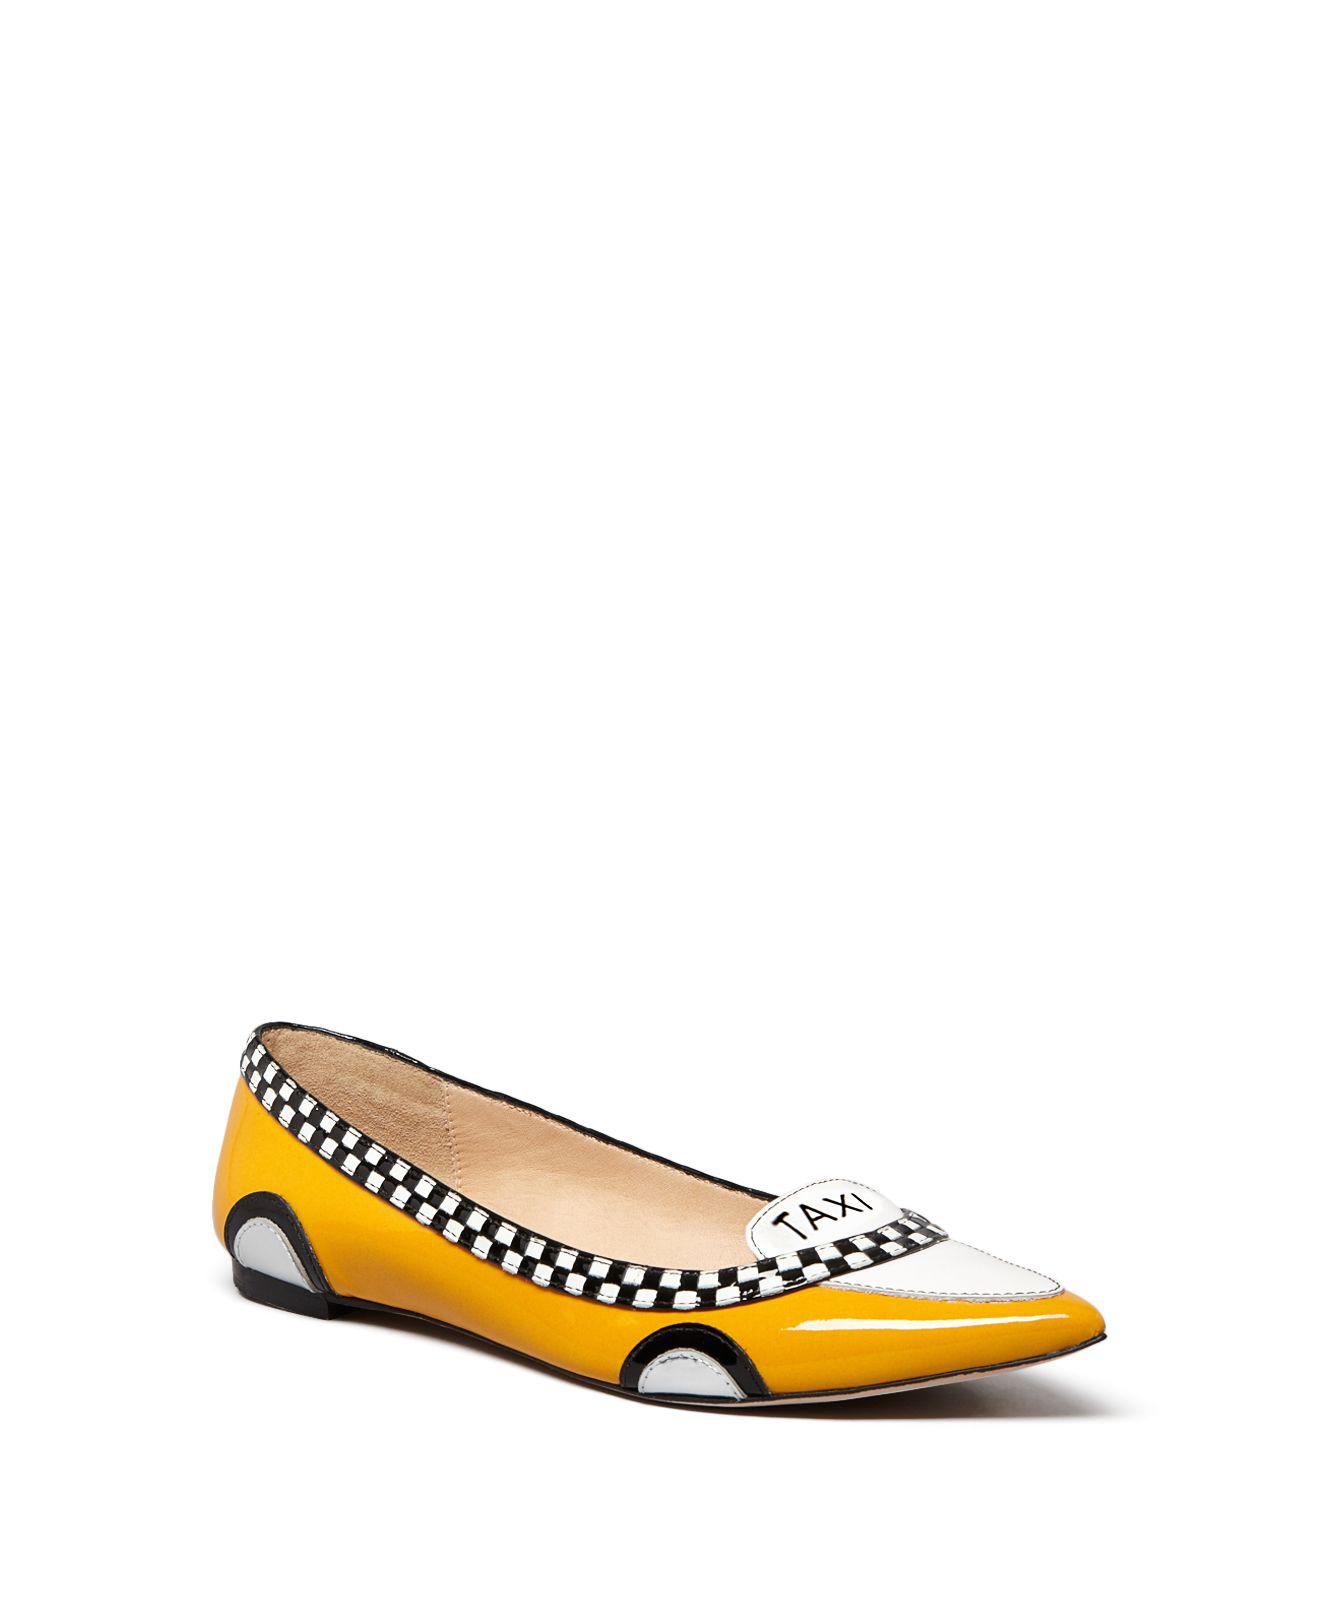 Kate Spade New York Taxi Shoes